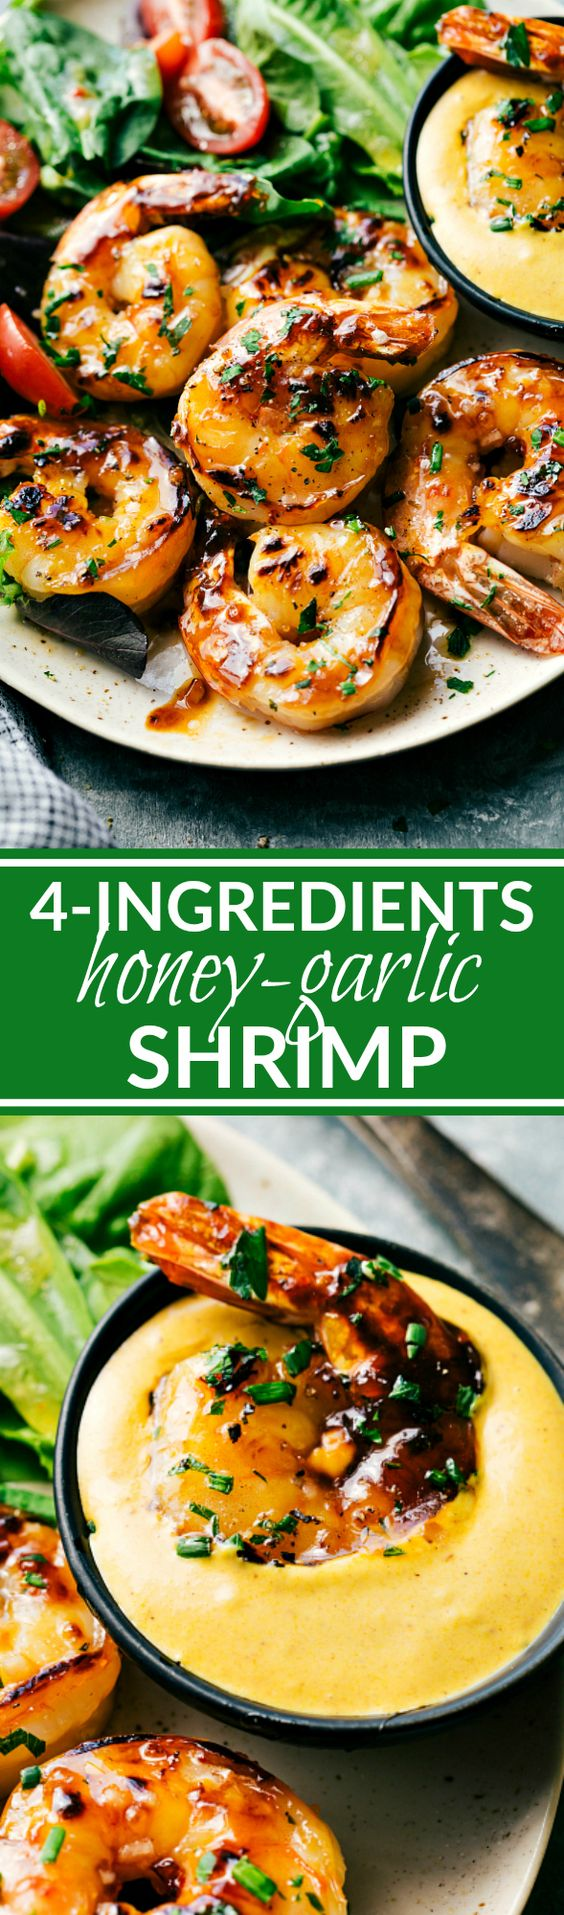 4-INGREDIENT SWEET HONEY LIME SHRIMP | Chelsea's Messy Apron #5ingredientsuppers #5ingredientmeals #5ingredientdinners #5ingredientlunches #5ingredientrecipes #easyrecipes #quickrecipes #simplefamilyrecipes #simplefamilymeals